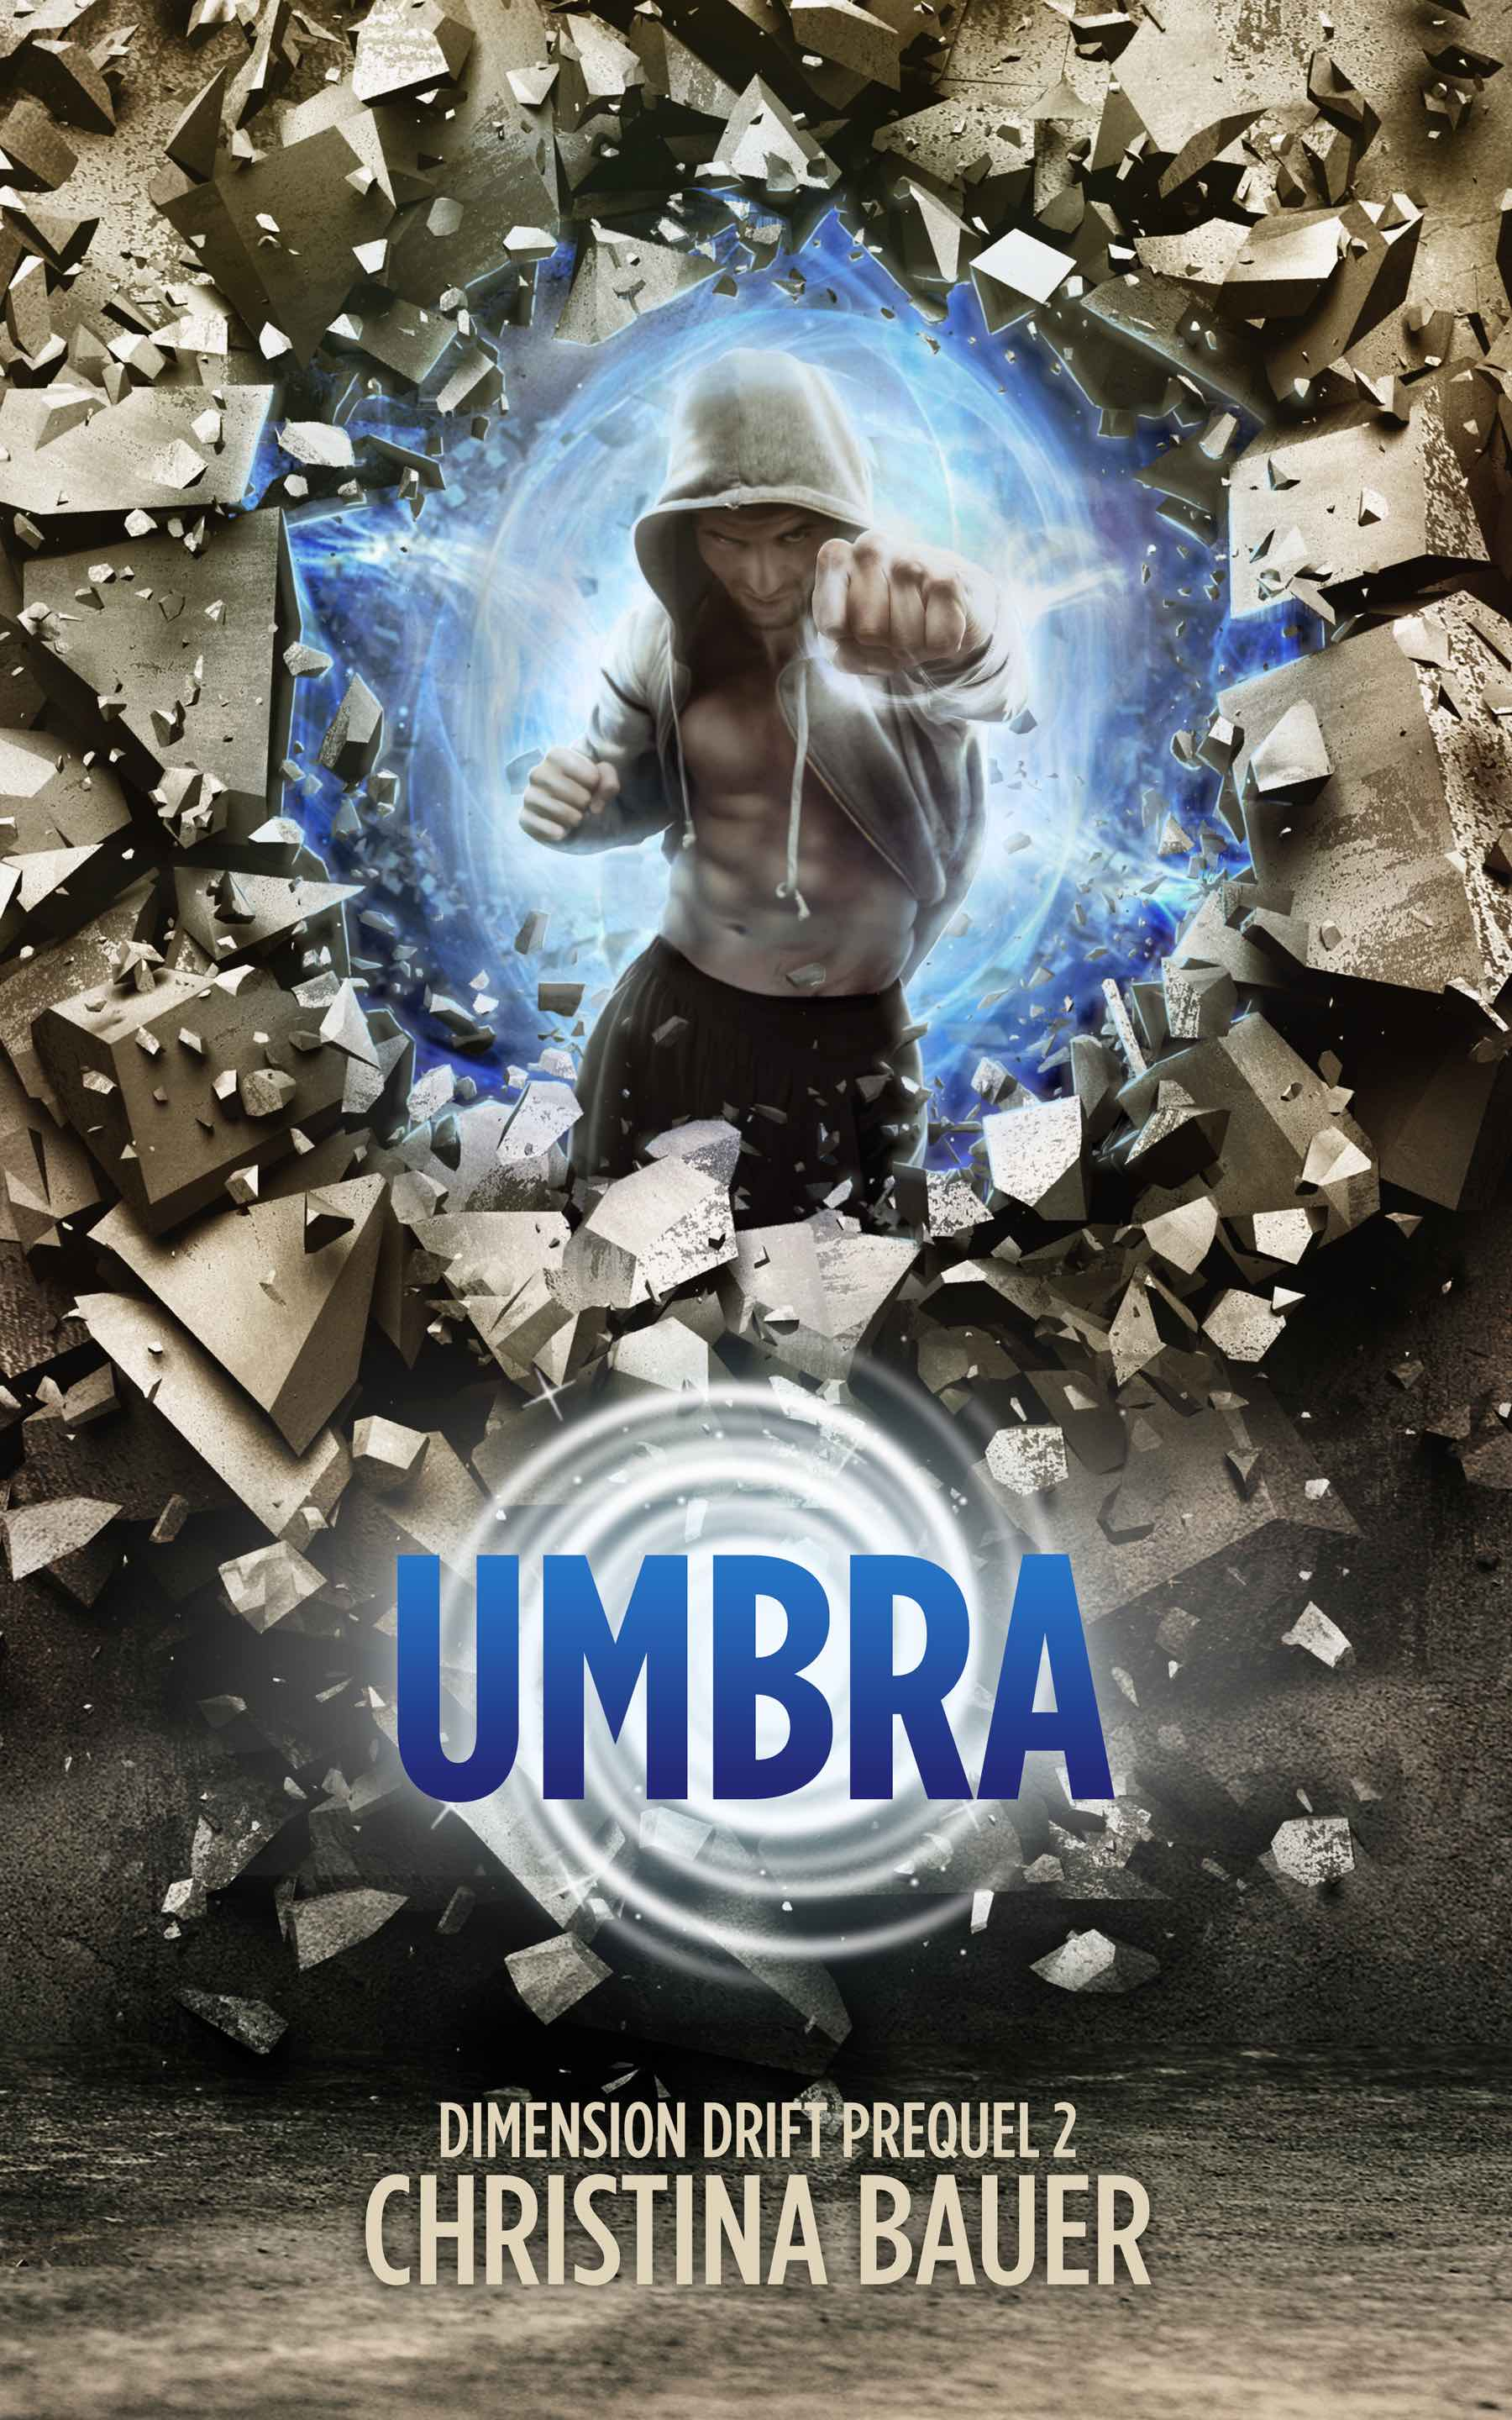 Umbra - Dimension Drift Prequel 2